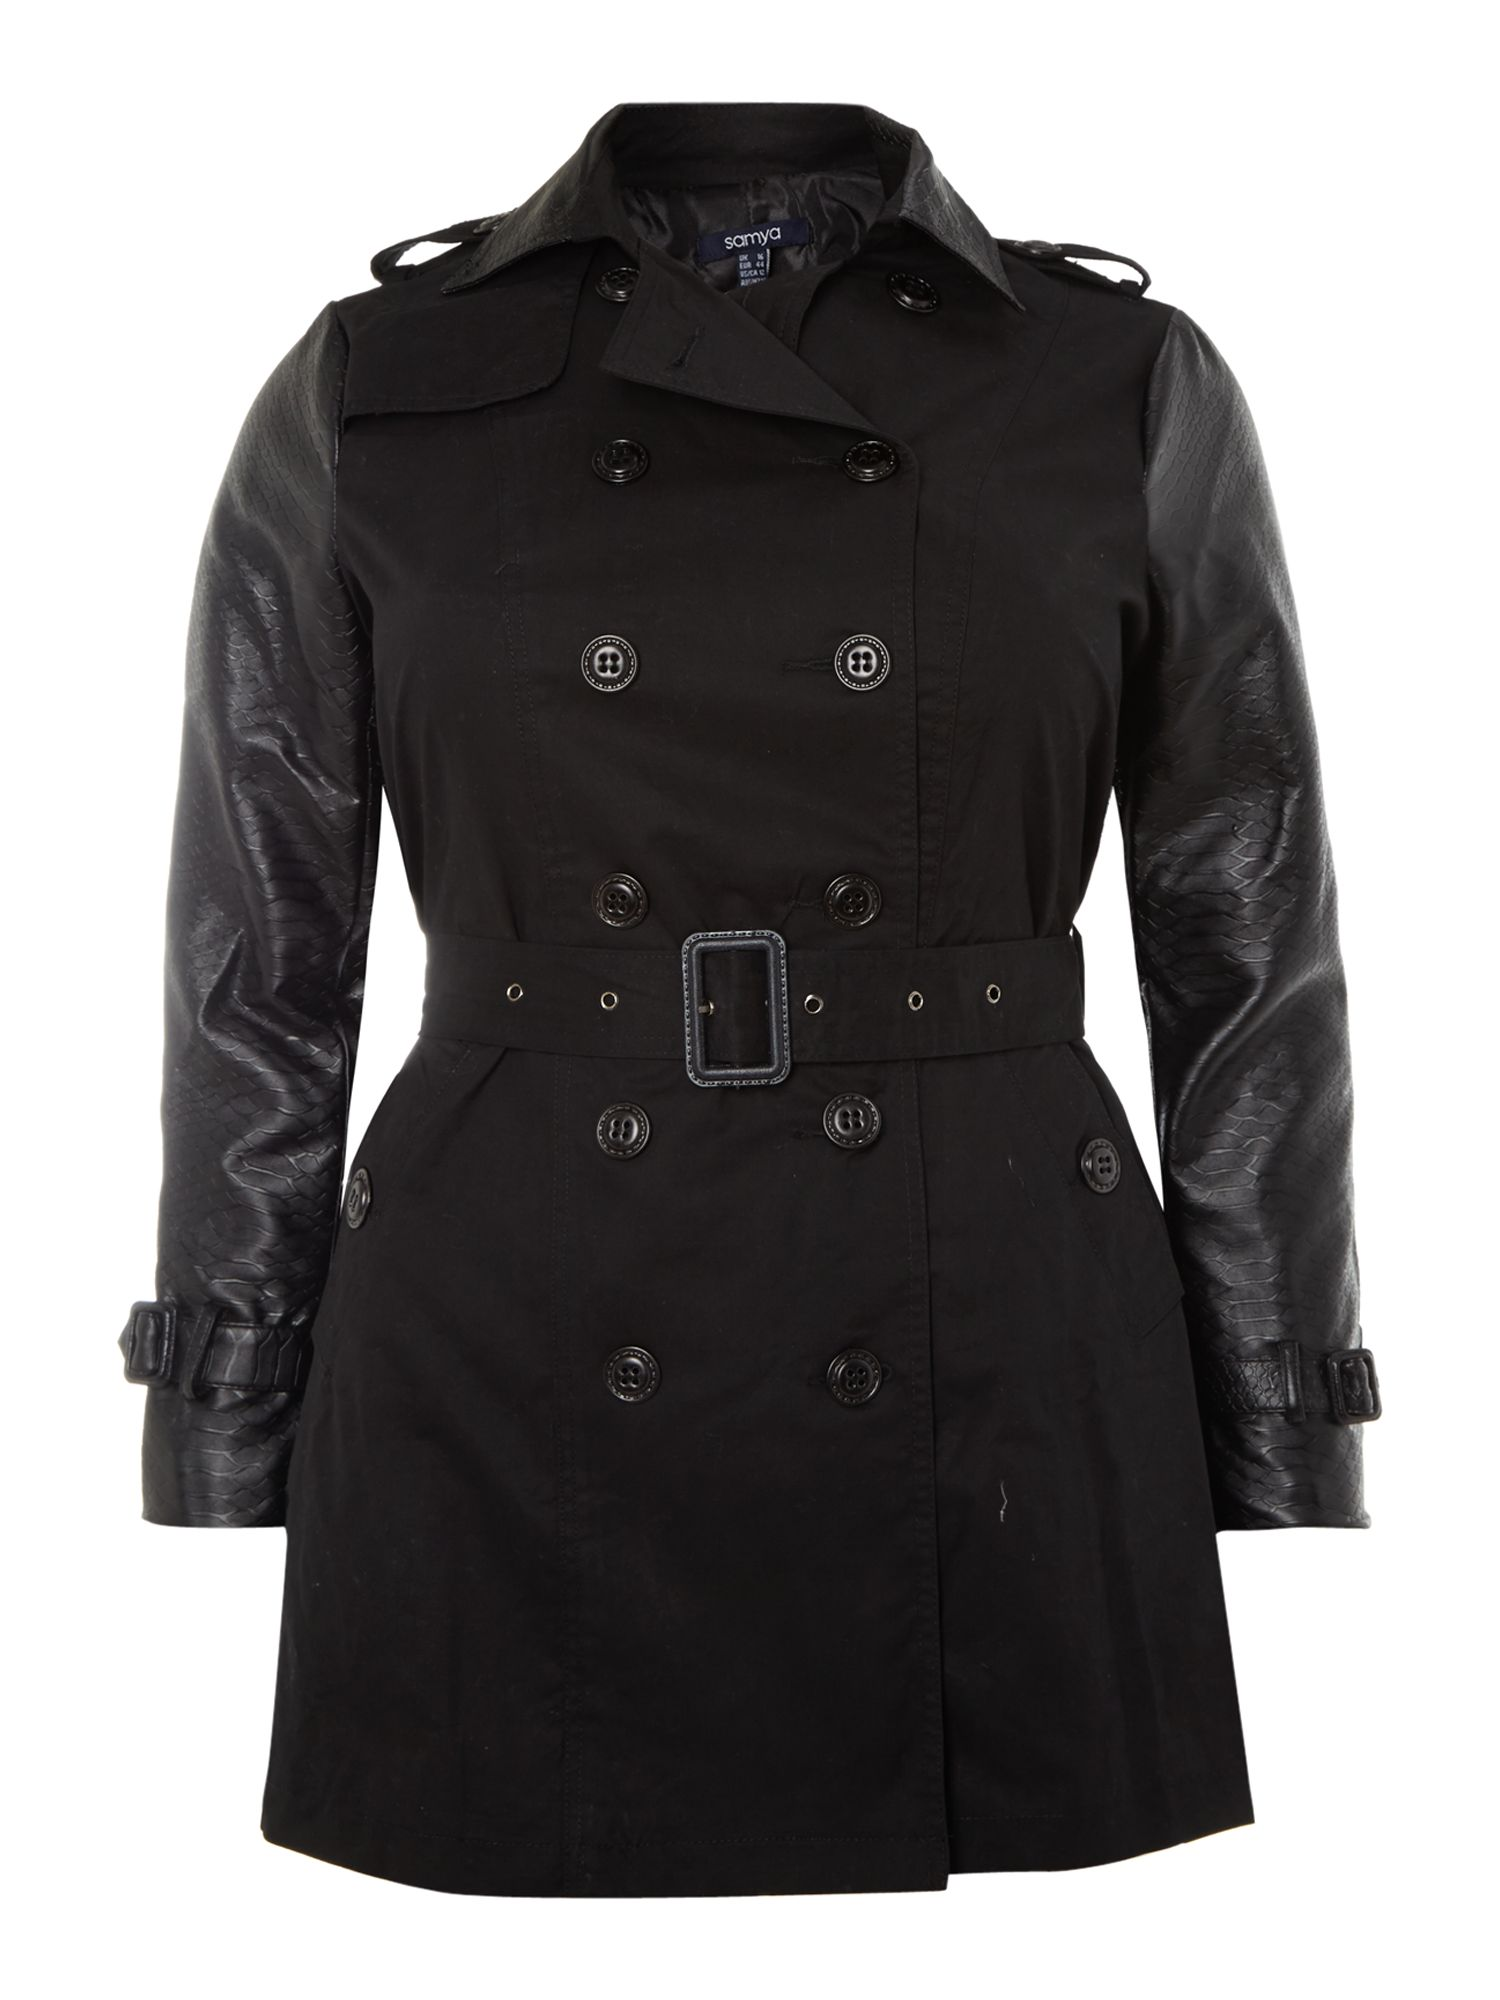 Reptile contrast sleeve trench coat